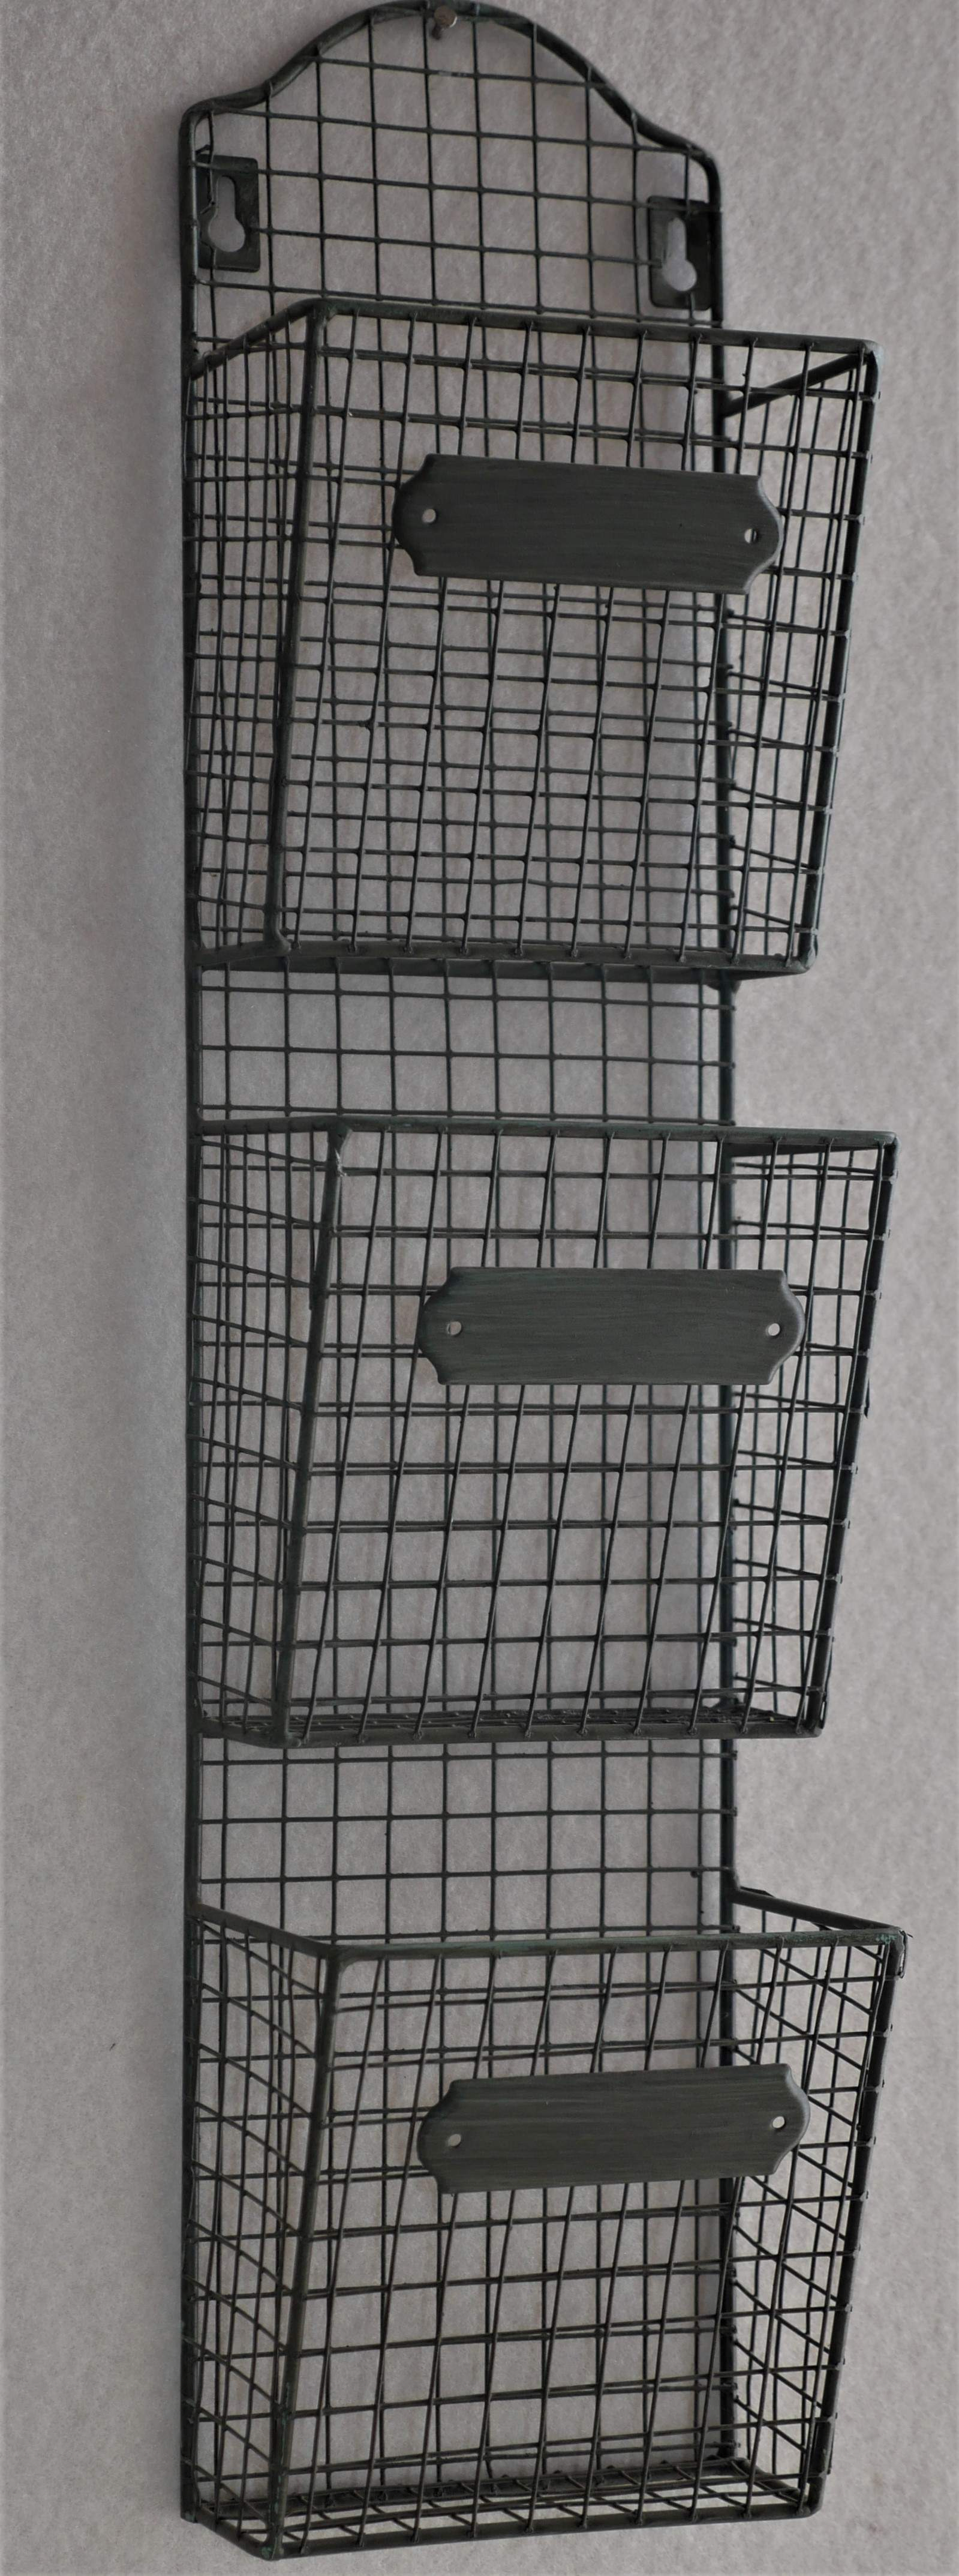 Wire Wall rack with three pockets for storage.